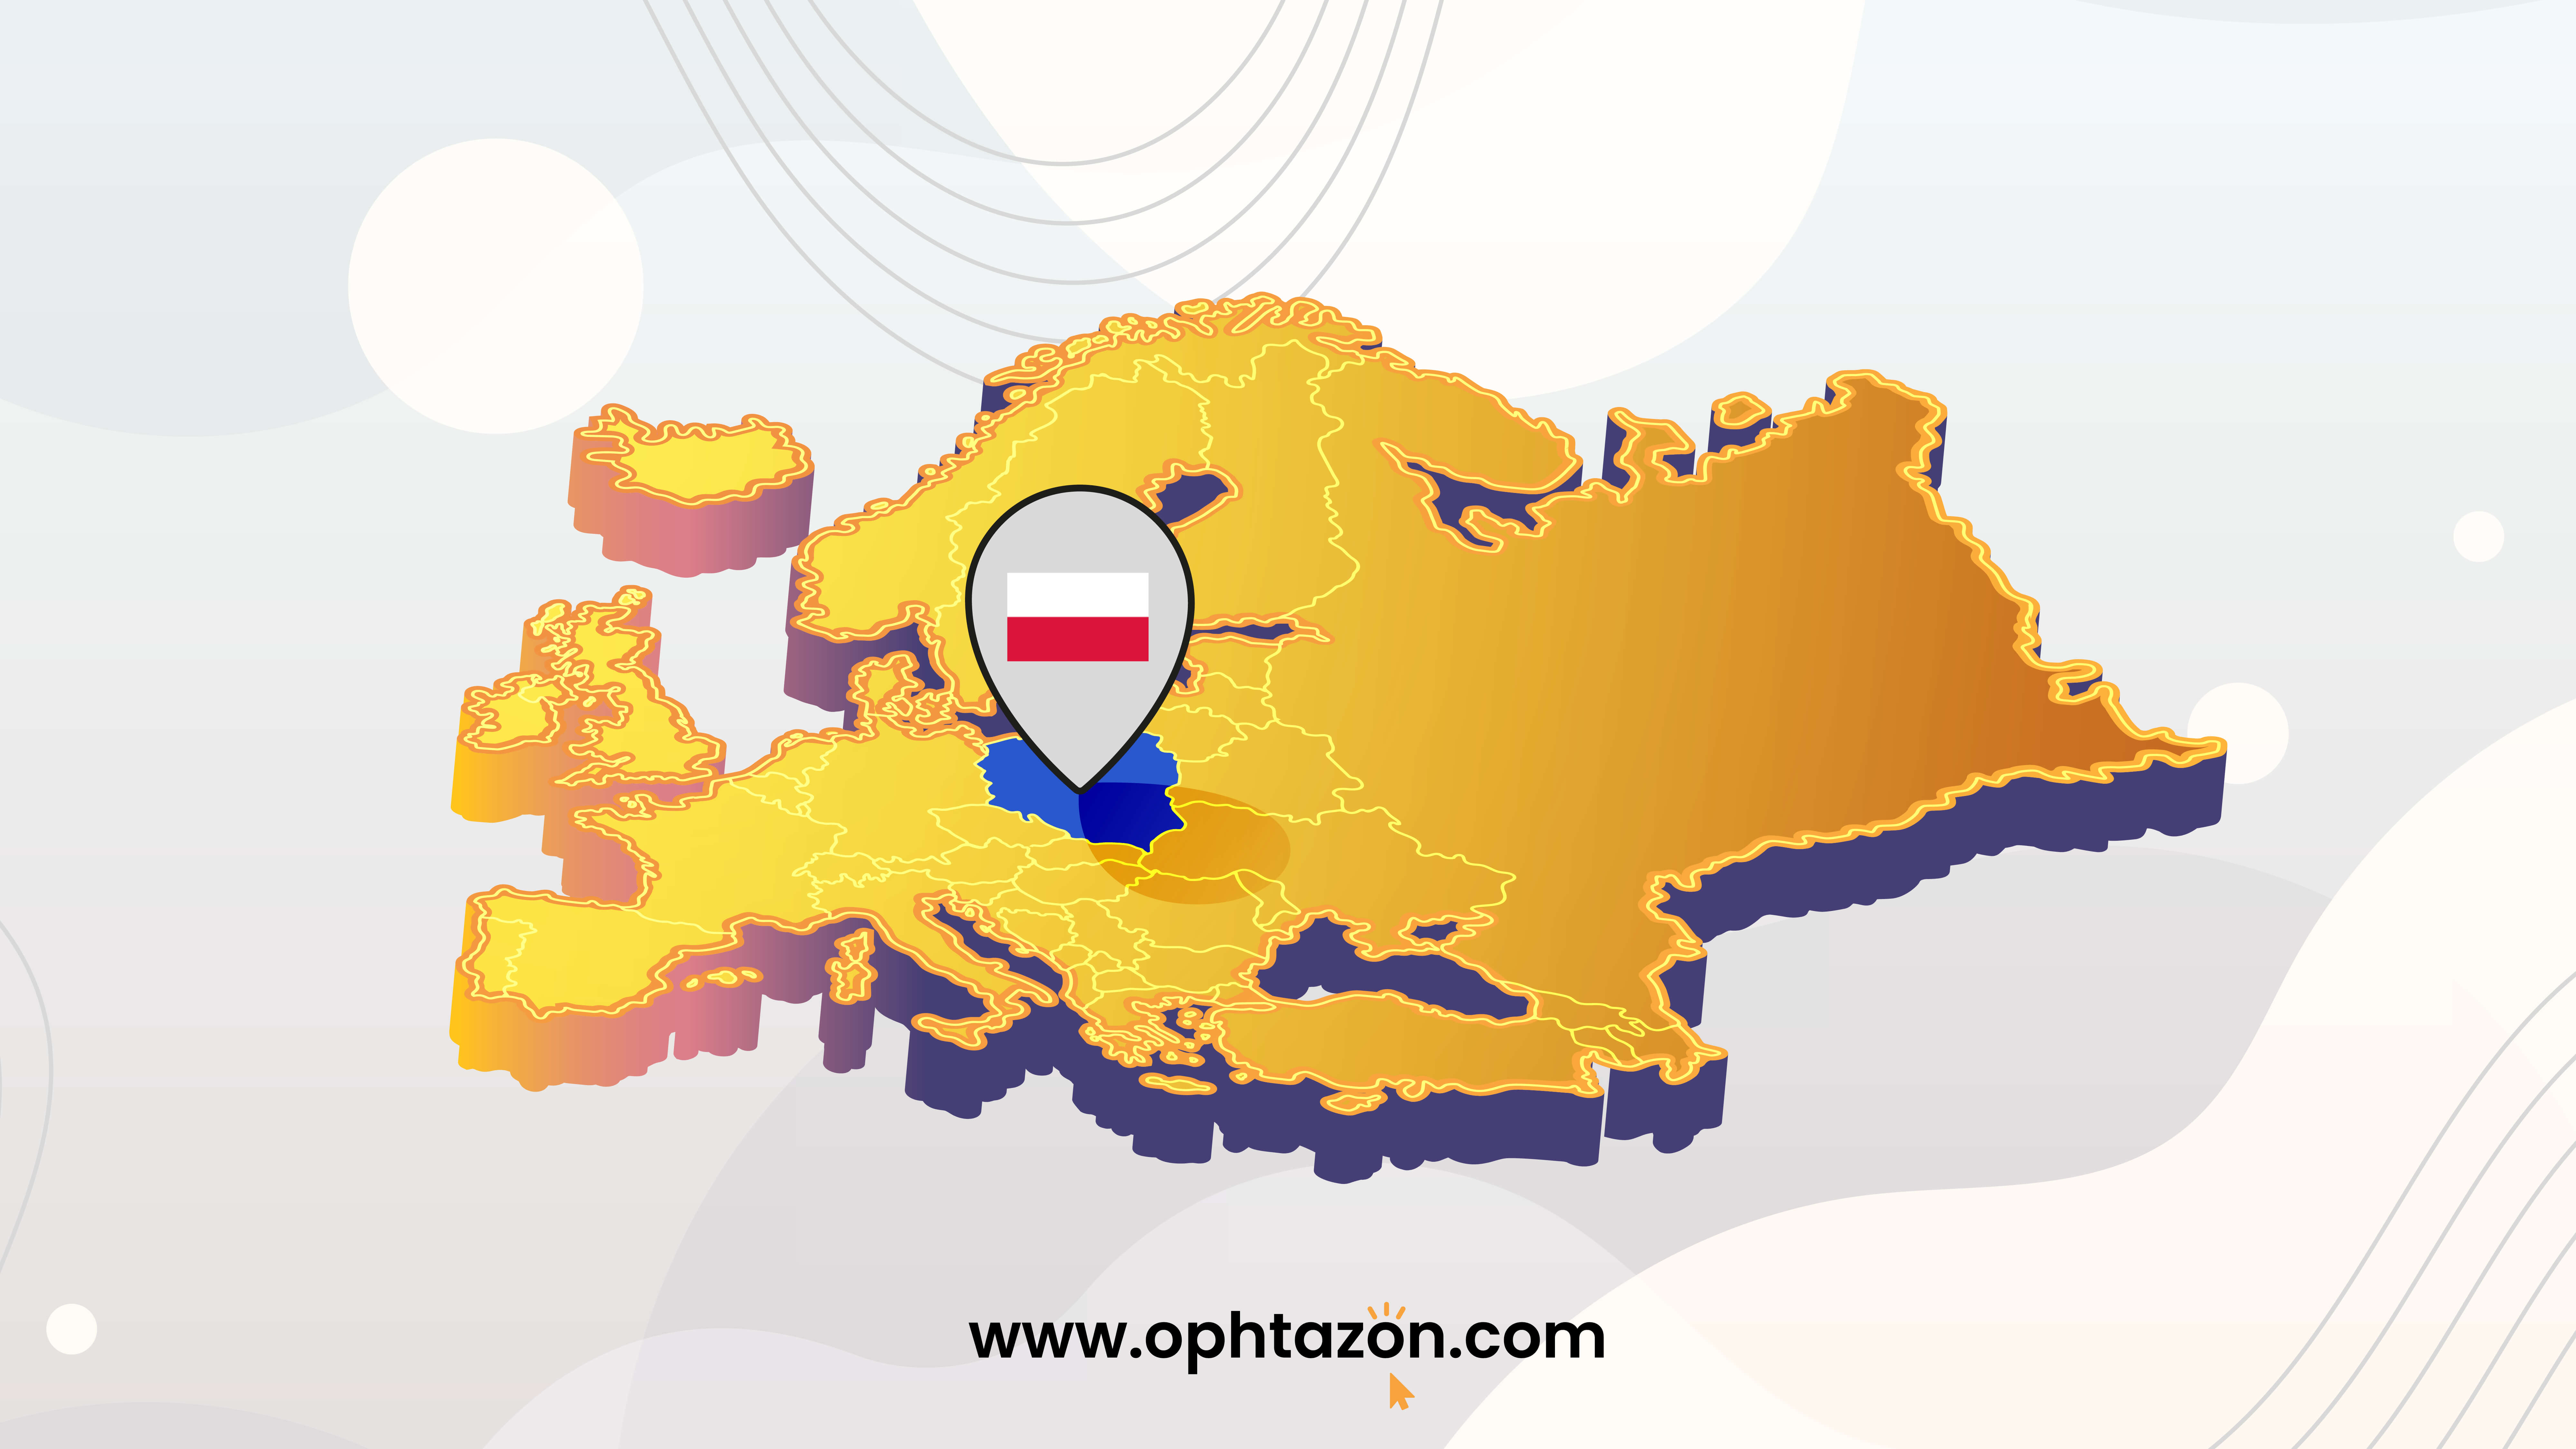 Poland on our website OPHTAZON !